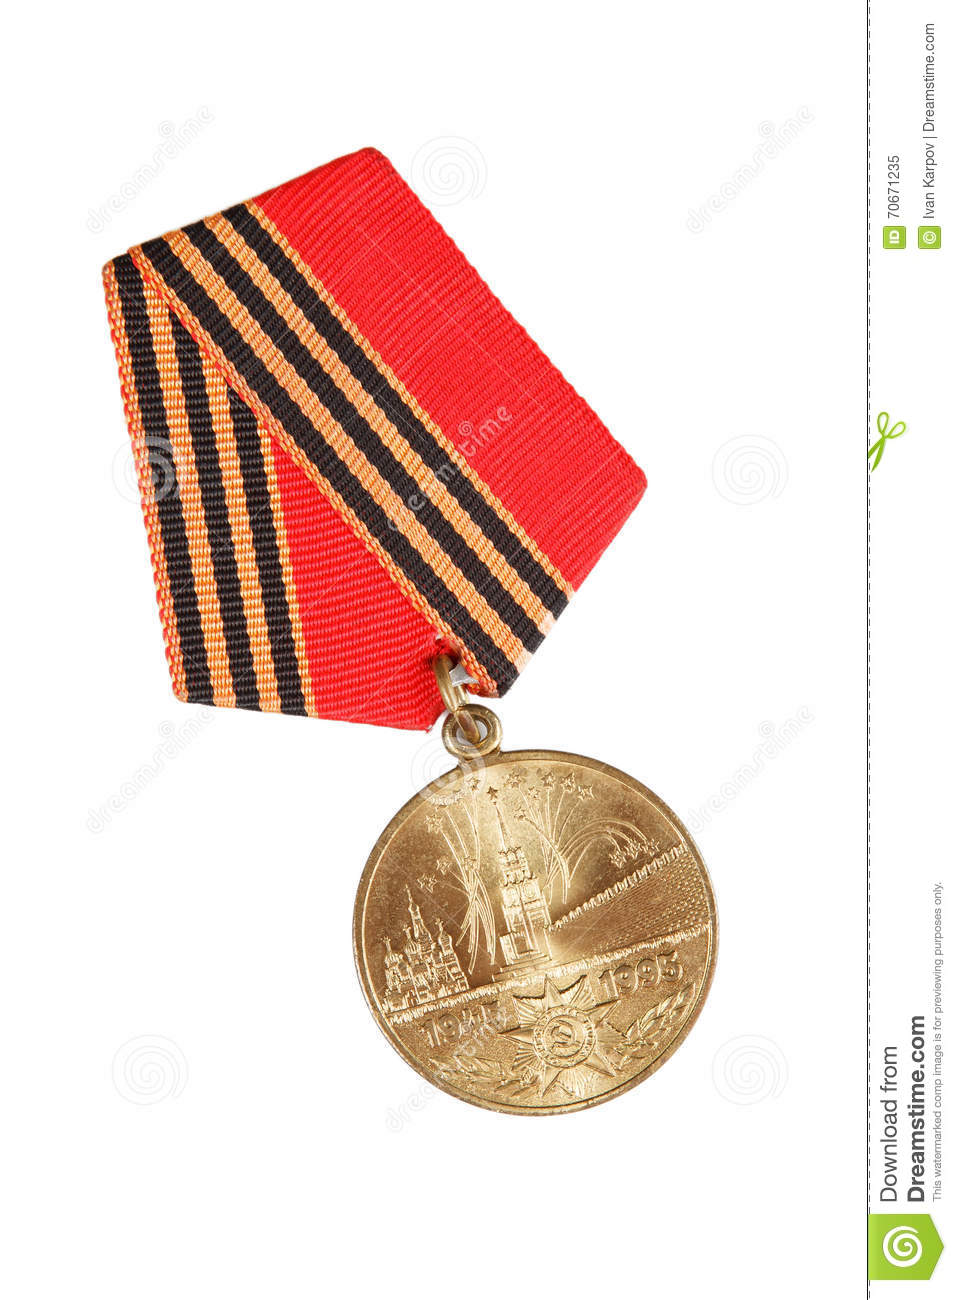 Jubilee Medal 50 Years of Victory in Great Patriotic War. isolated on white. illustrative editorial.